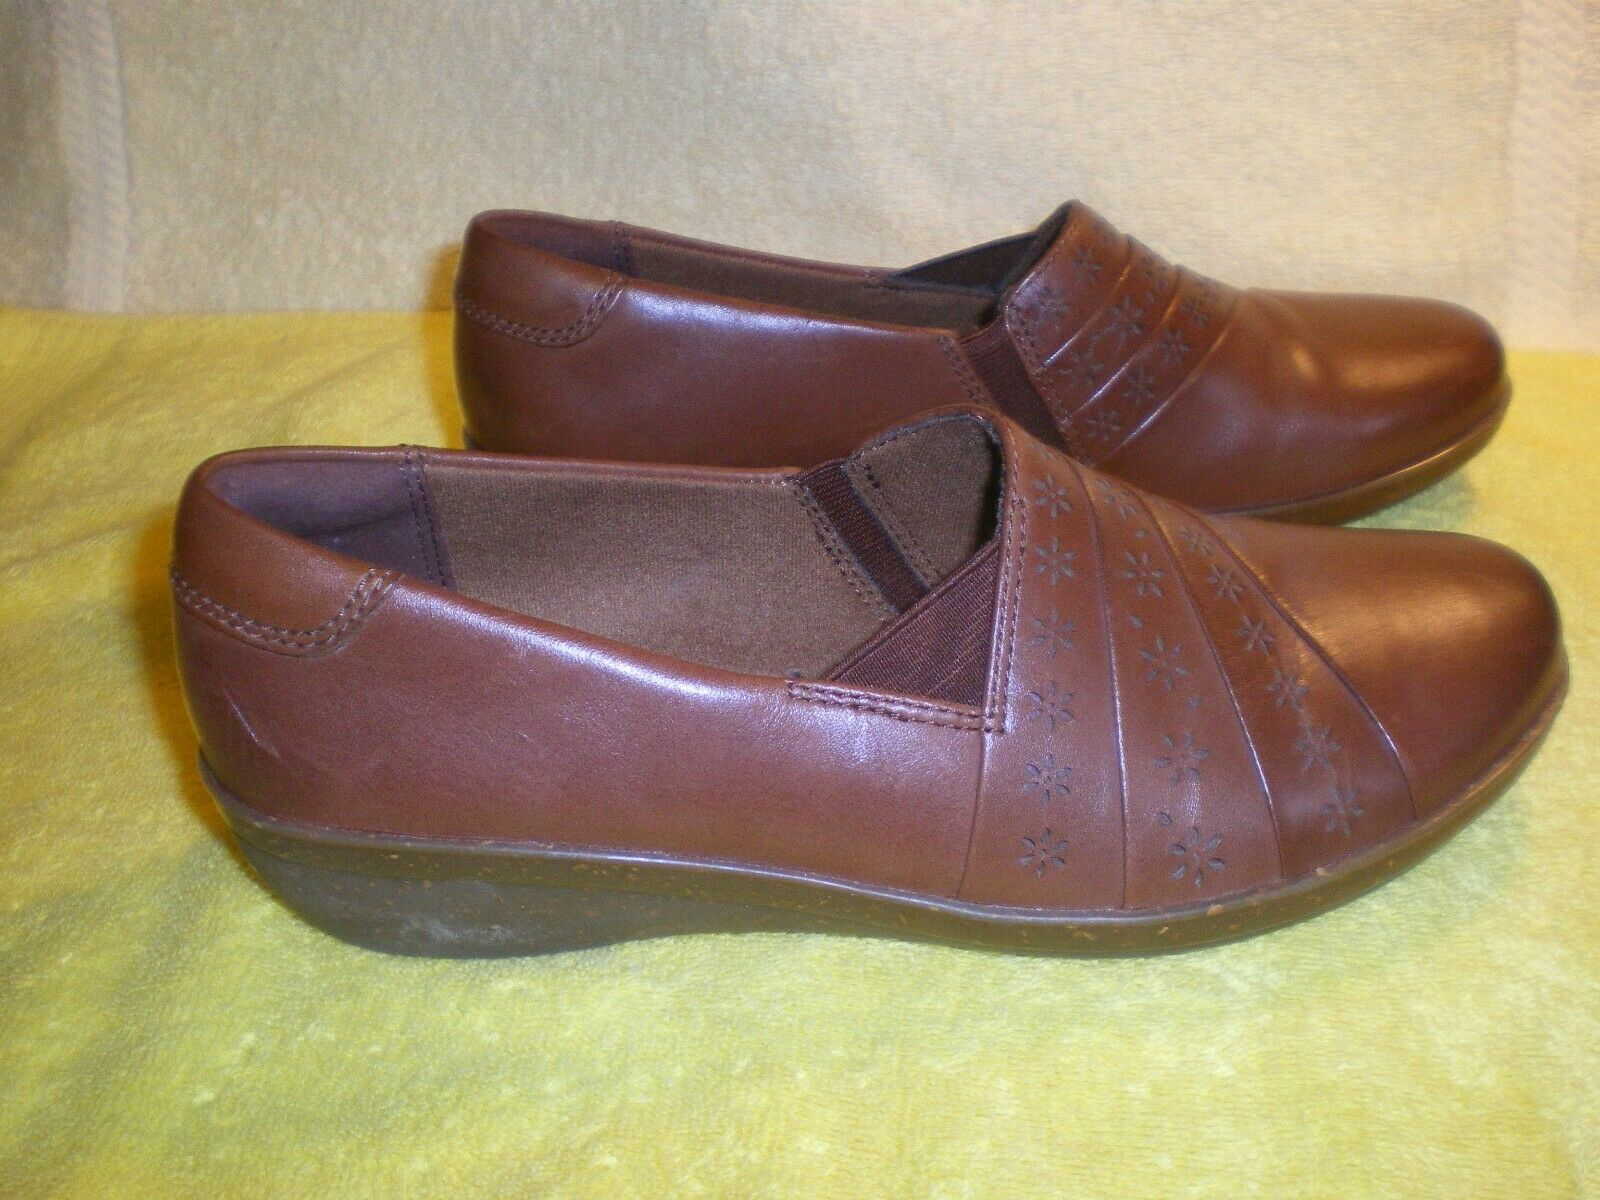 Clarks Collection Women's 7M Brown Leather Slip On Casual Shoes Soft Cushion